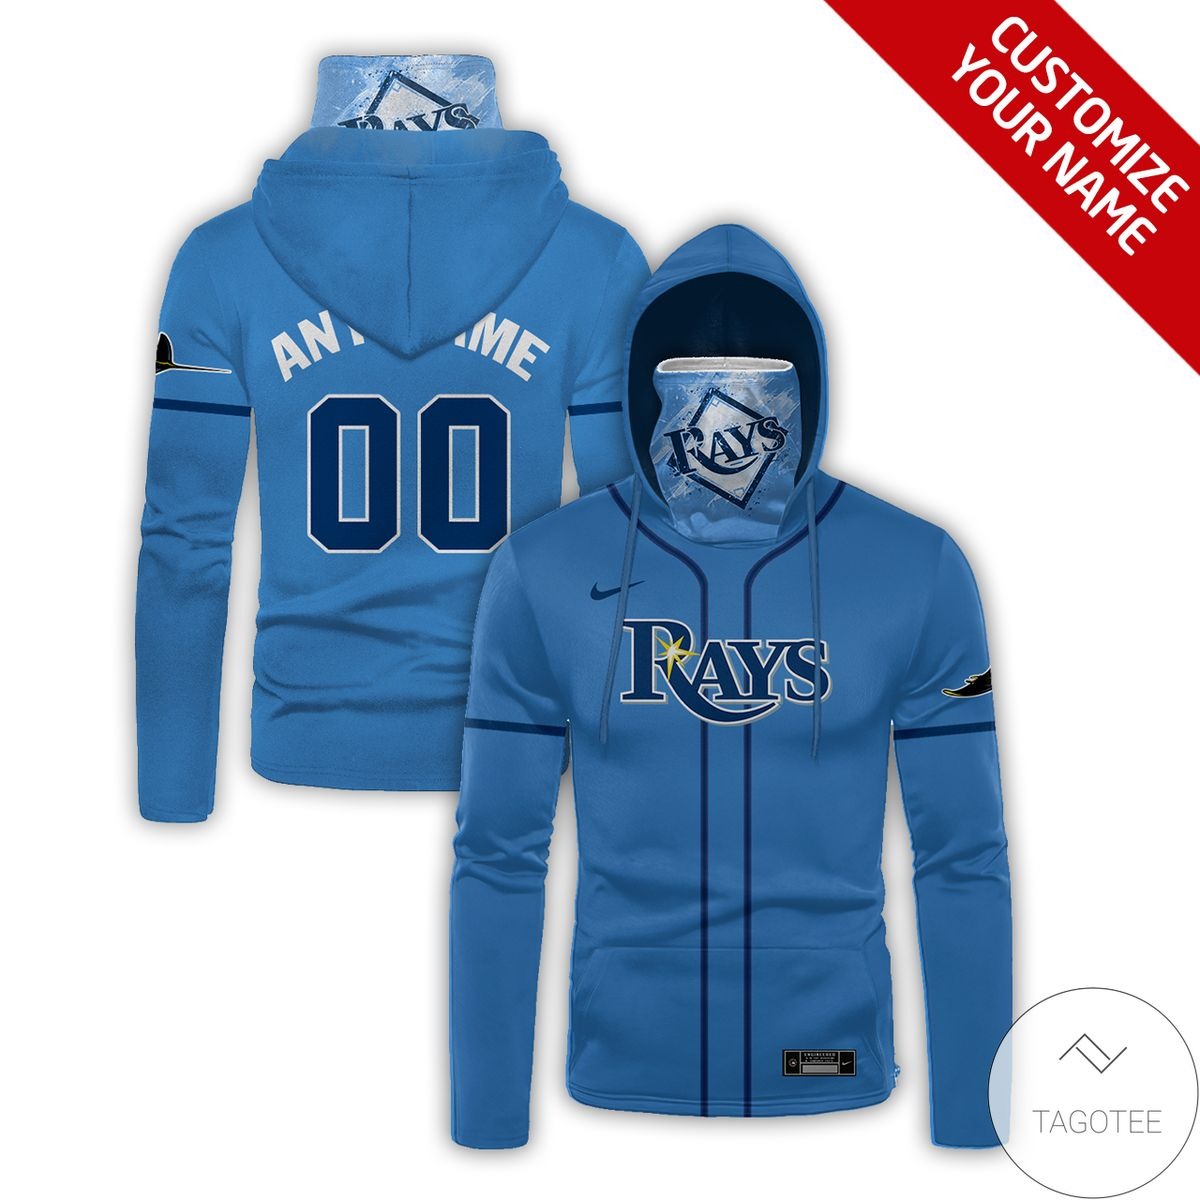 Vibrant Personalized Tampa Bay Rays Gaiter Mask Hoodie